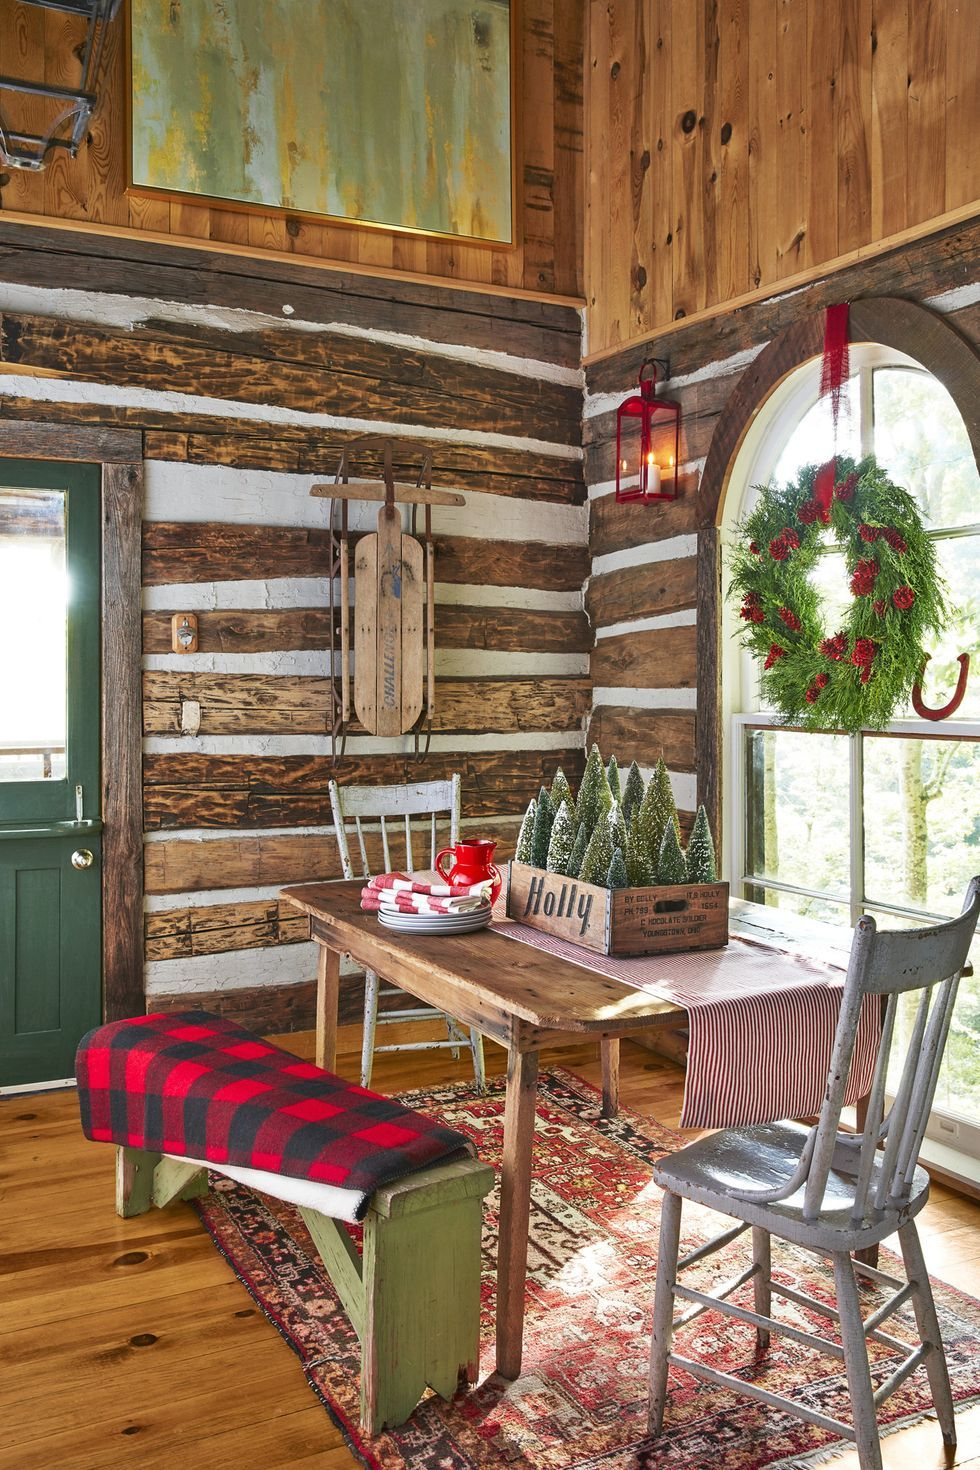 90 Best Christmas Decoration Ideas For The Merriest Home On The Block In 2020 Fun Christmas Decorations Christmas Decorations Rustic Country Christmas Decorations